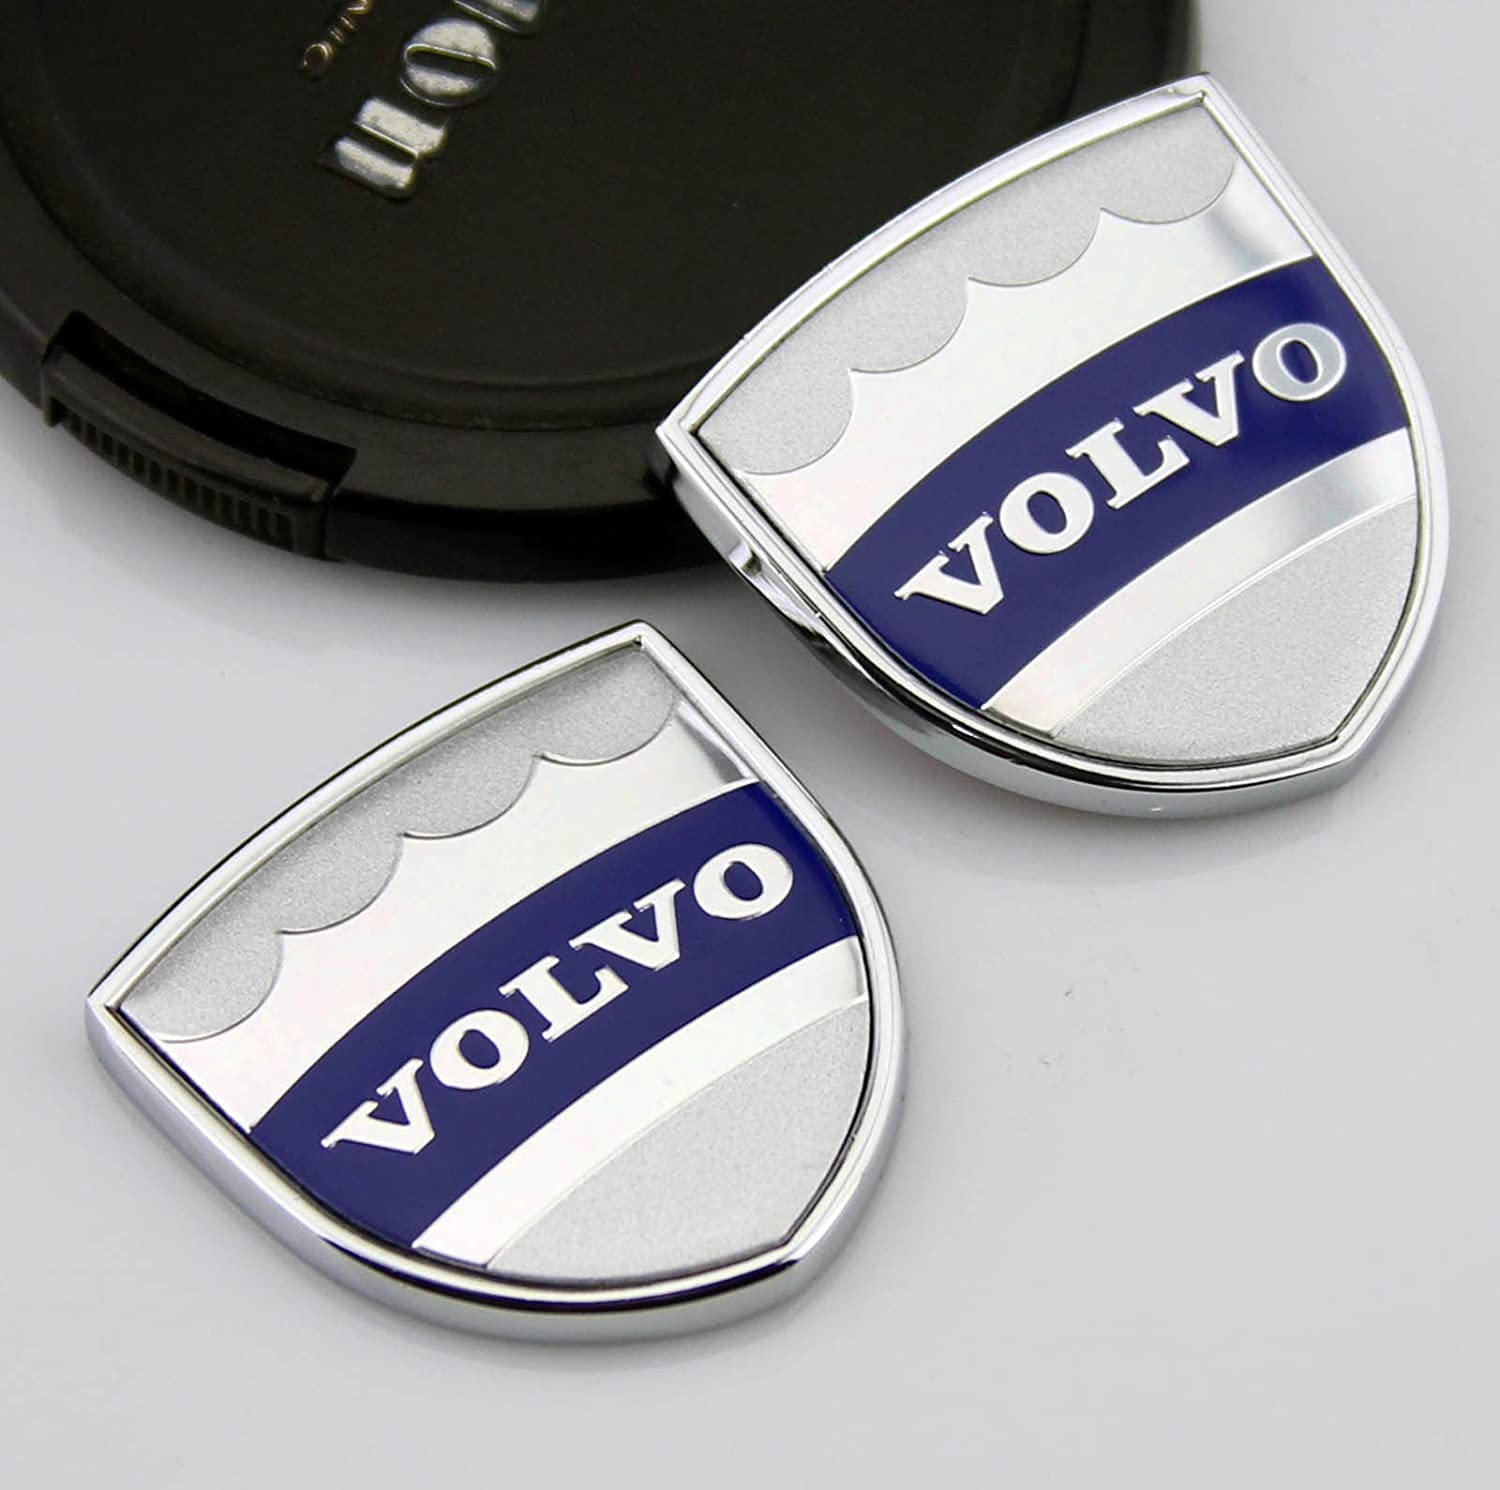 Incognito 7 3d laxury volvo logo volvo badges volvo emblem volvo metal stickers for all volvo cars 2 pcs amazon in car motorbike